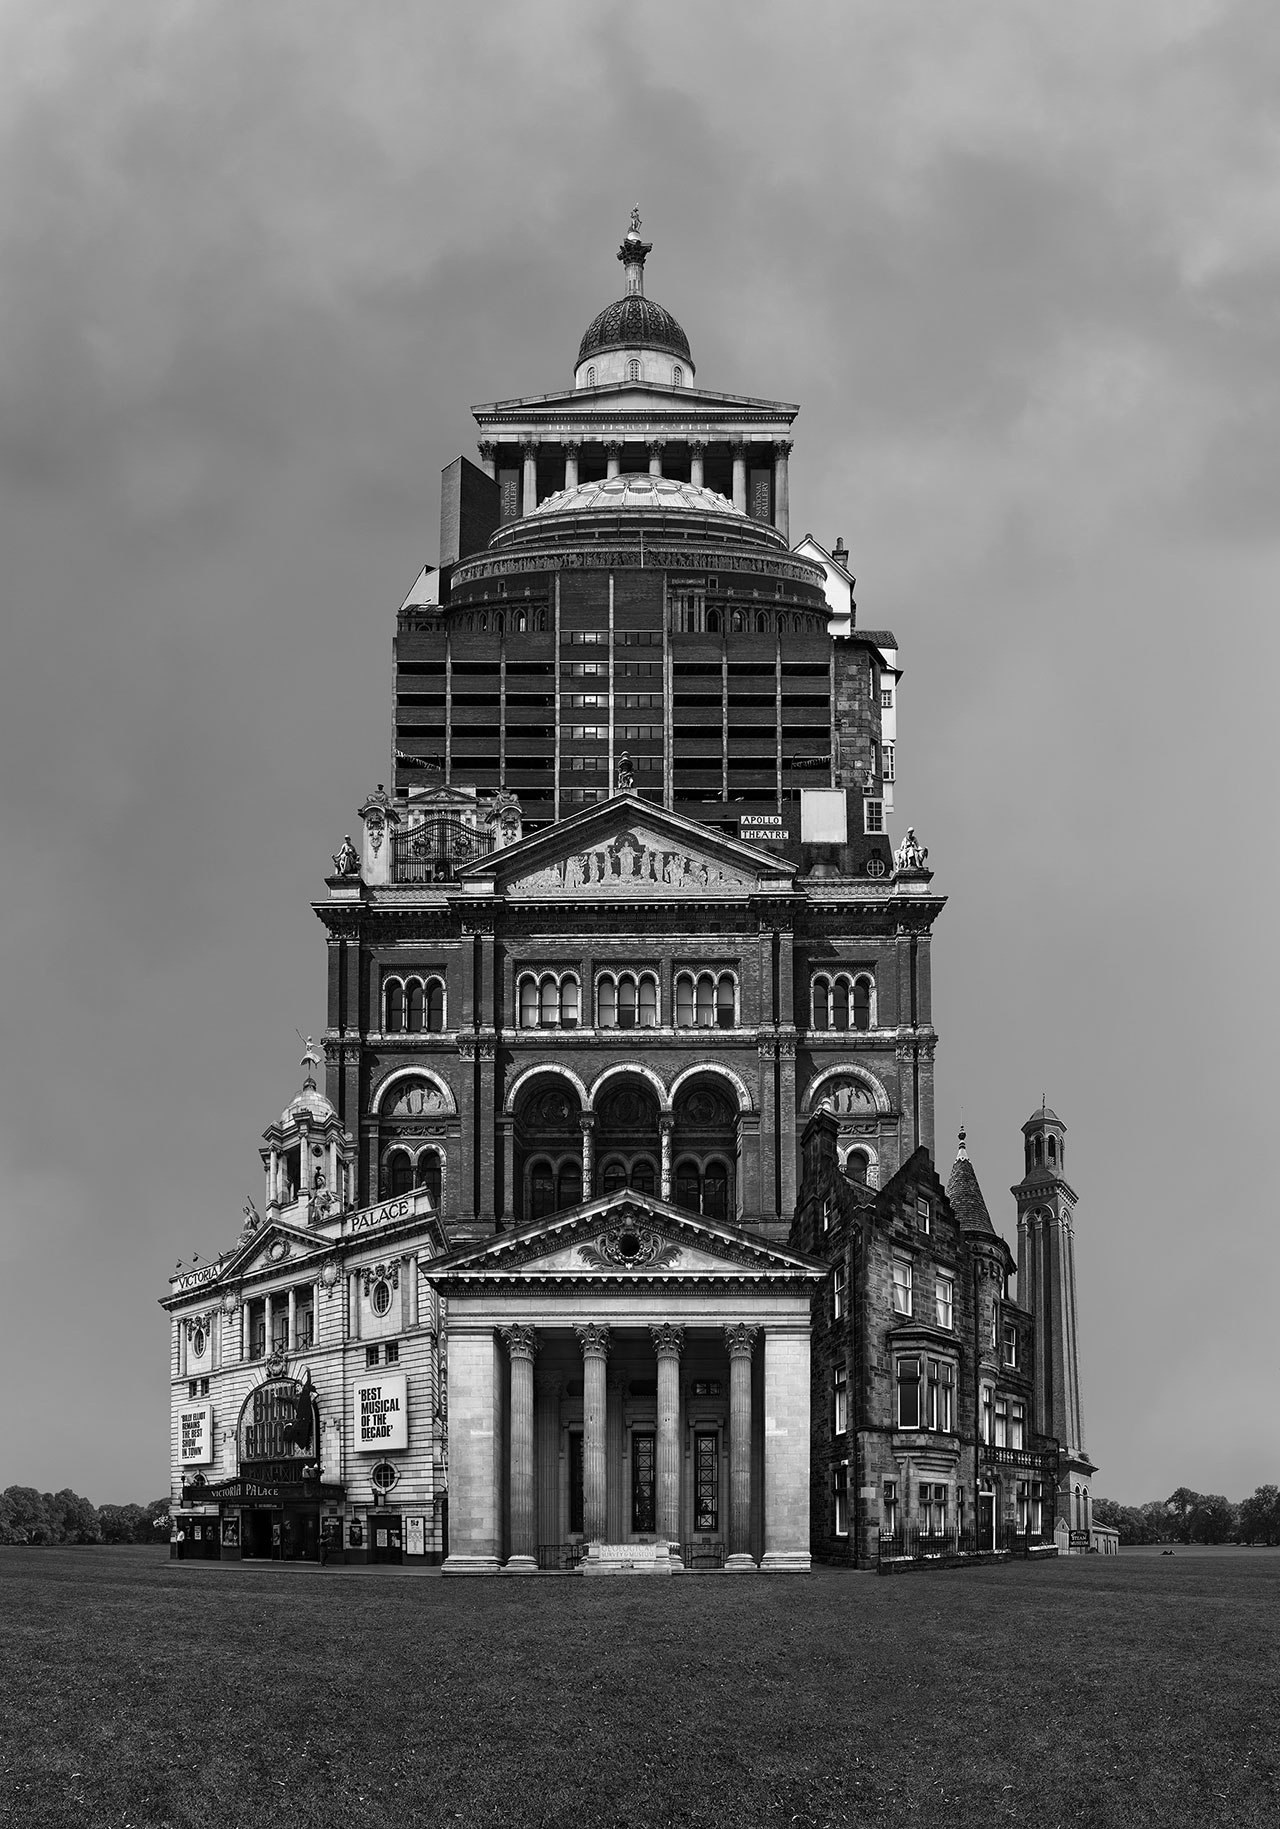 Beomsik Won,Archisculpture 011, 2012. Archival pigment print, 100x70 or 171x120cm.